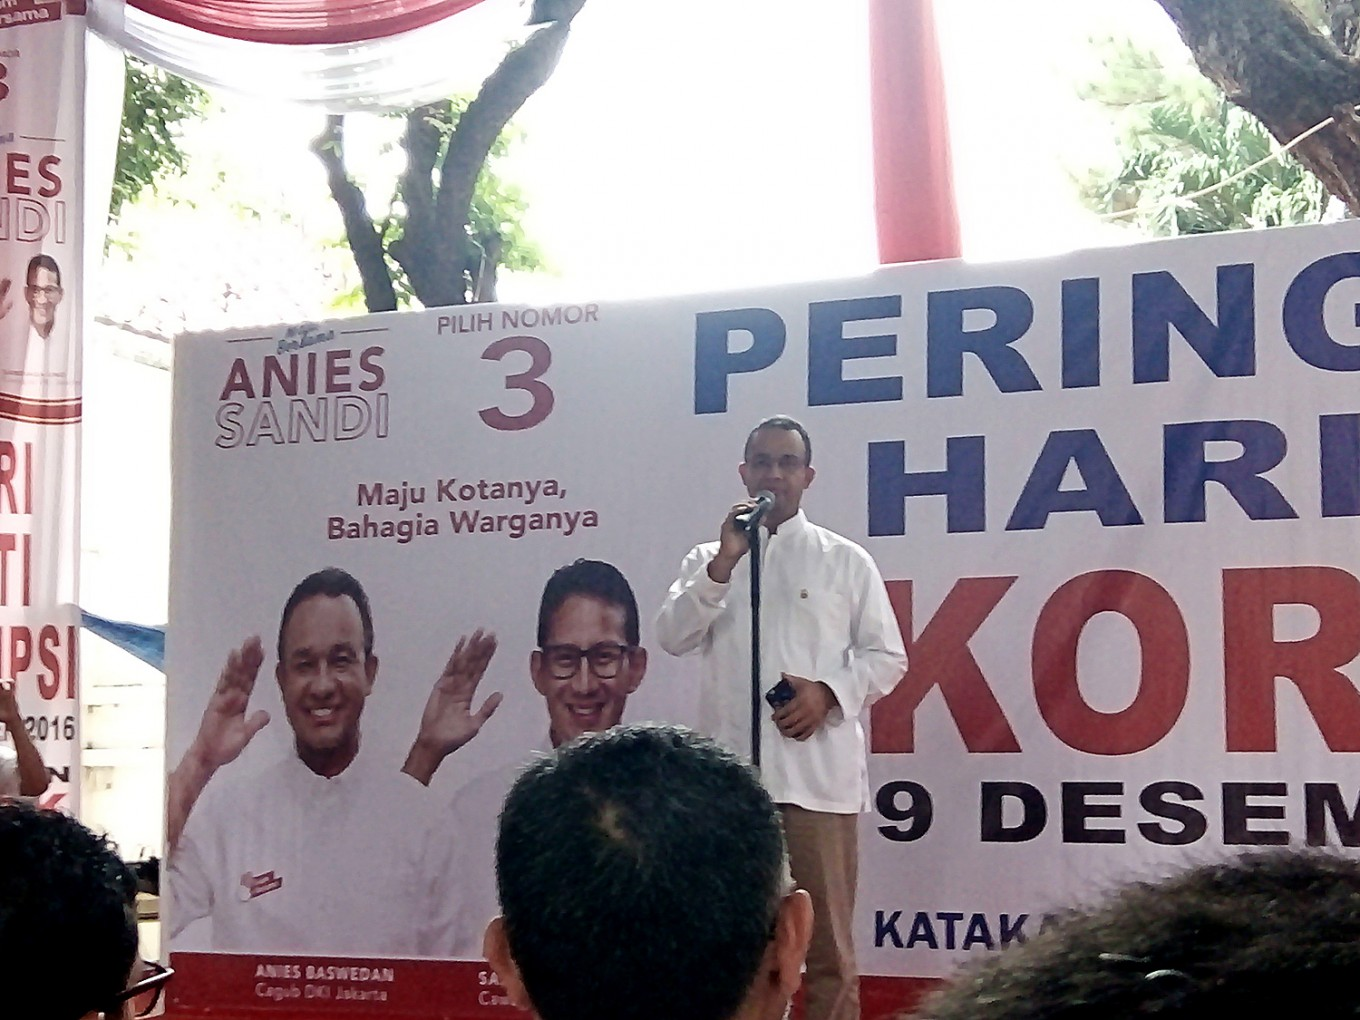 Anies, Sandiaga criticize Jakarta's low budget spending, policies